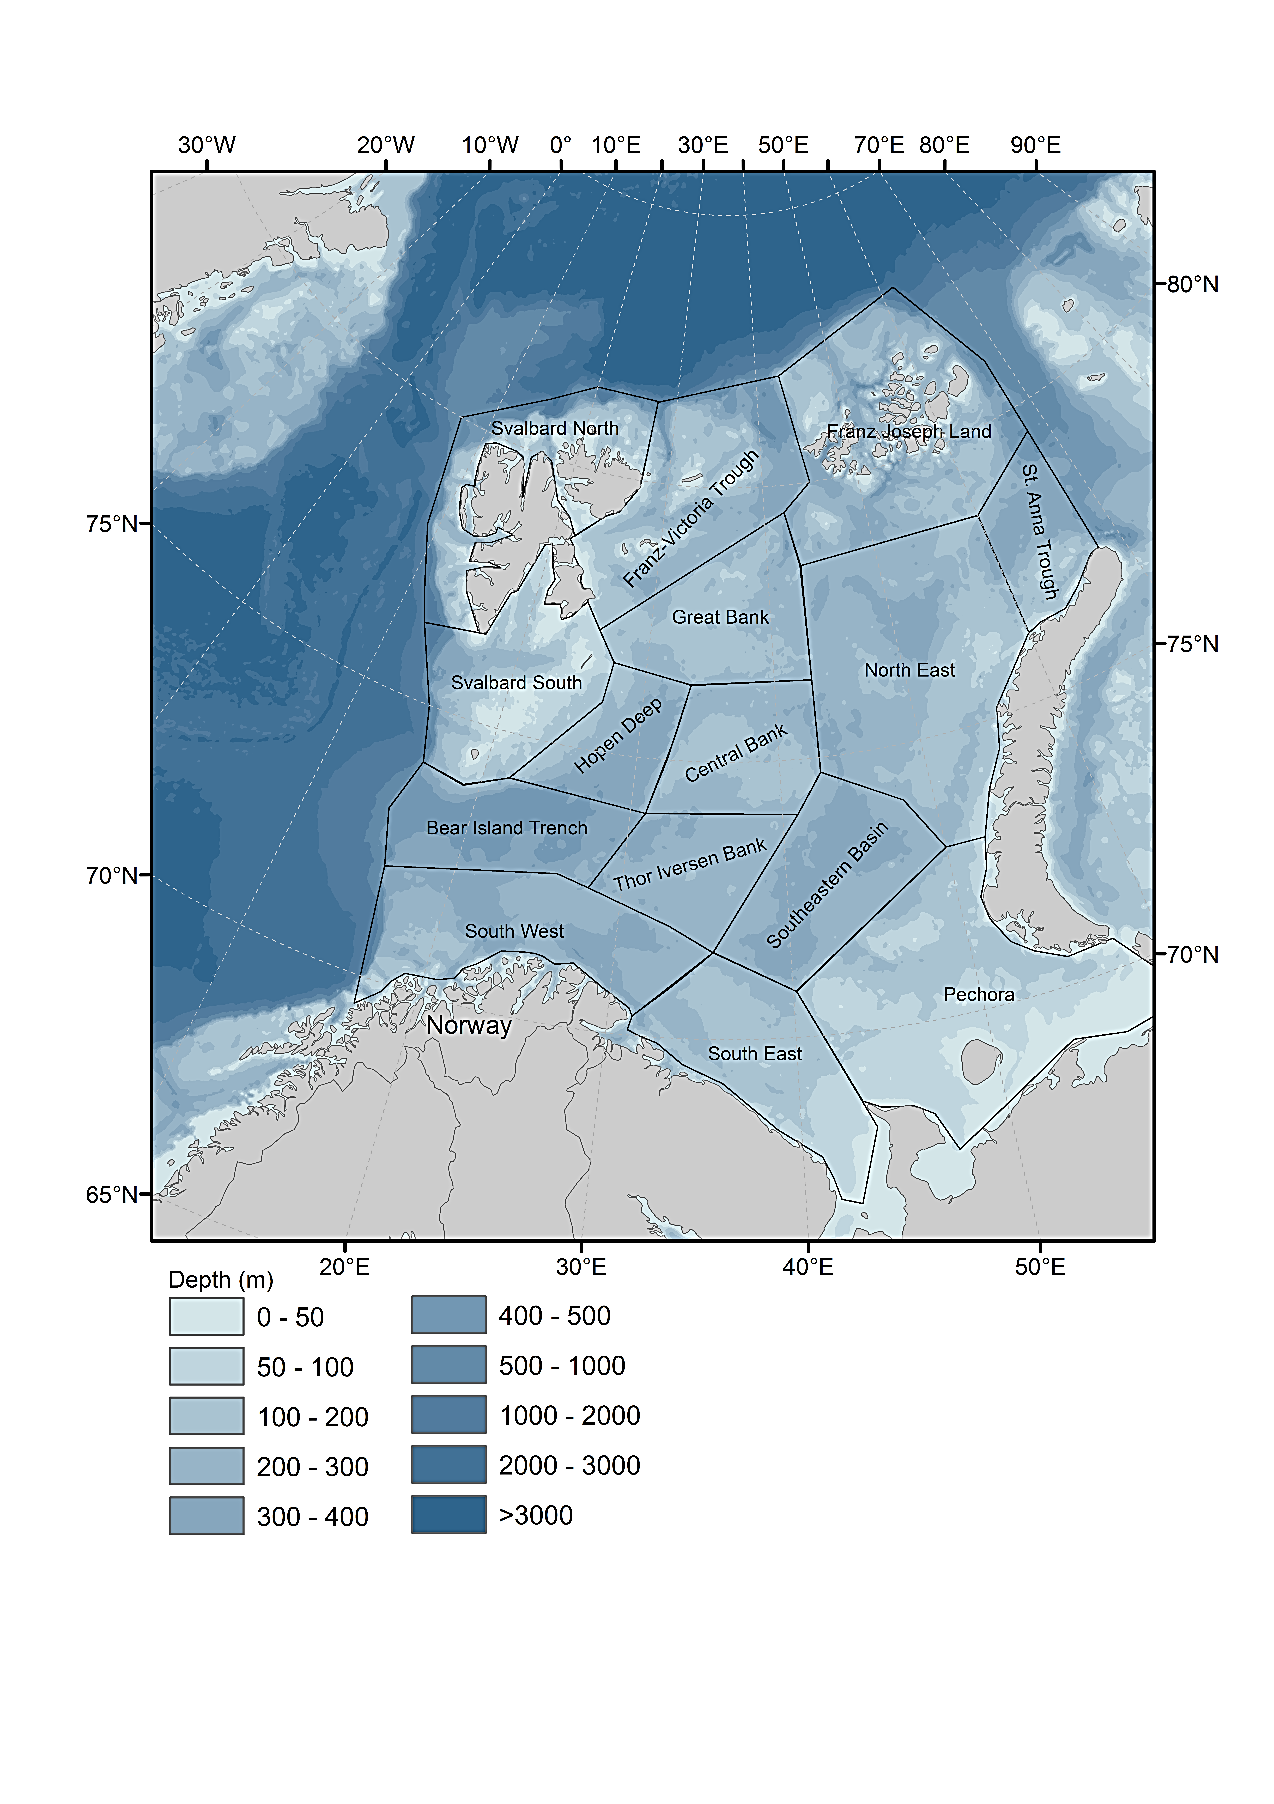 Figure 2.1.1. Map showing subdivision of the Barents Sea into 15 subareas (regions) used to calculate mean values and time-trends data from Barents Sea surveys.